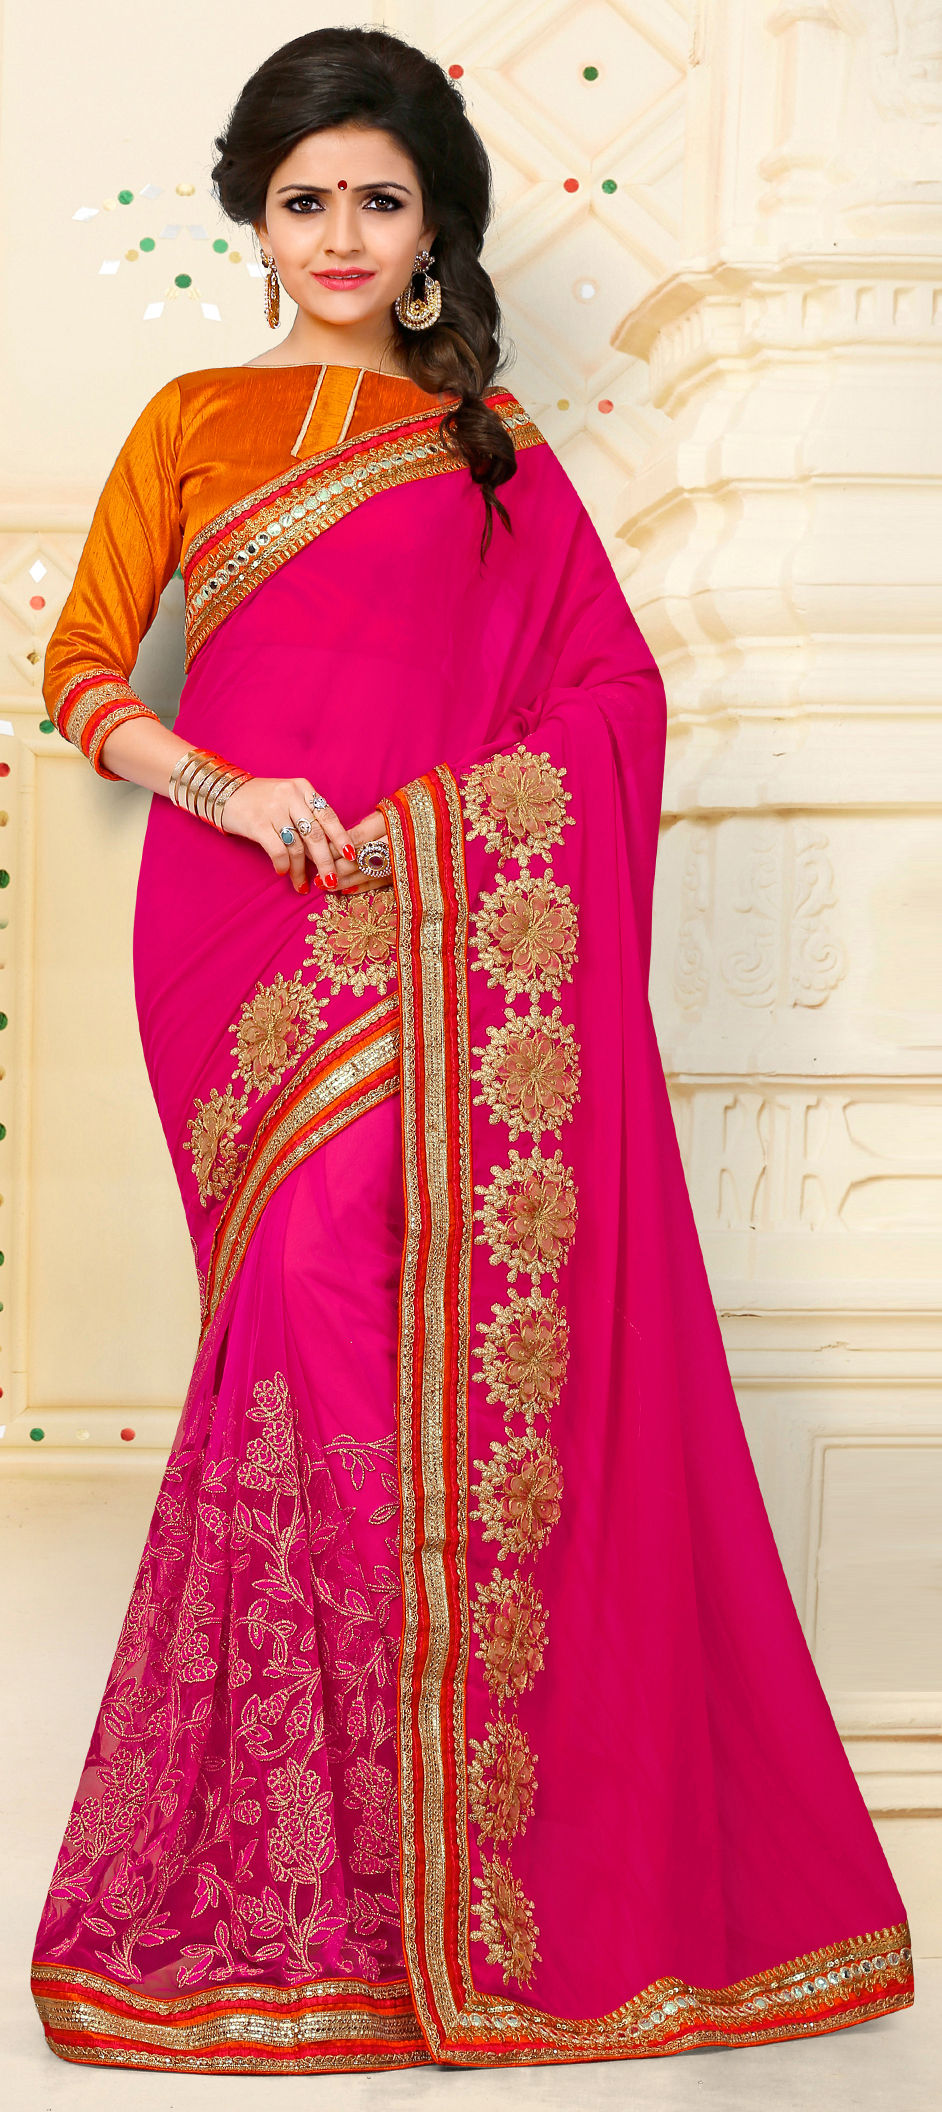 96c0d7a86a 718949: Pink and Majenta color family Embroidered Sarees, Party Wear ...